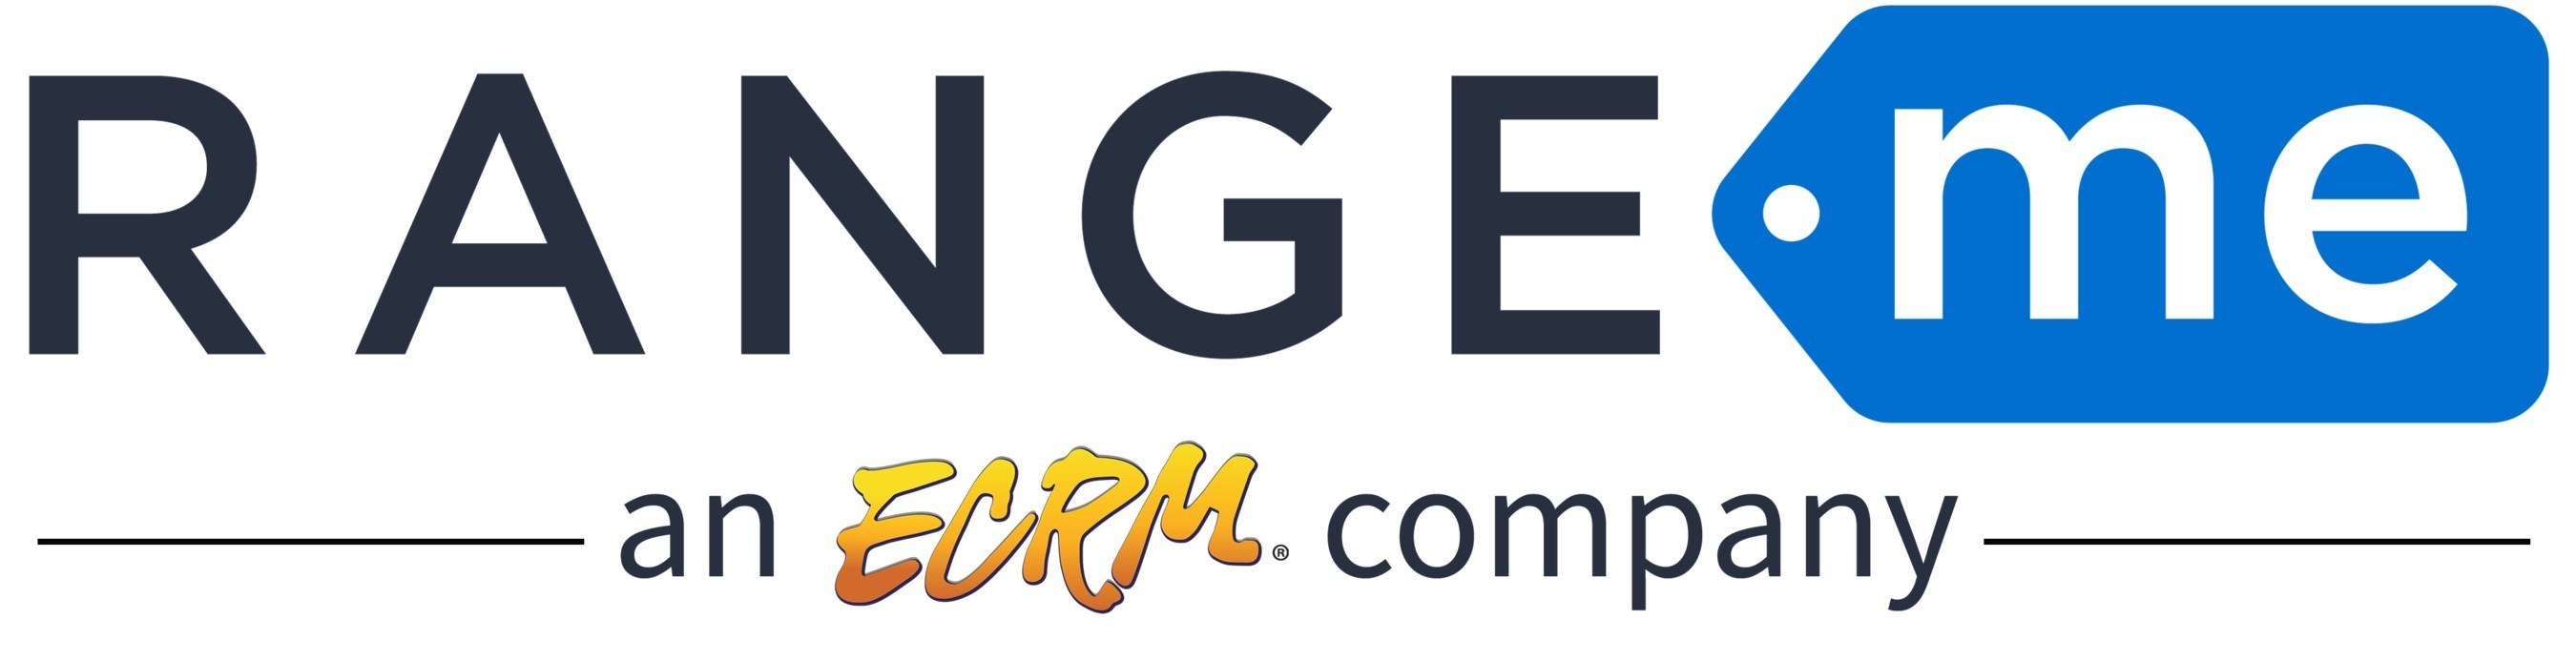 RangeMe and ECRM - helping buyers and suppliers increase productivity, optimize product assortments and enhance collaboration efforts via its service offerings that include product discovery, category development and category planning.